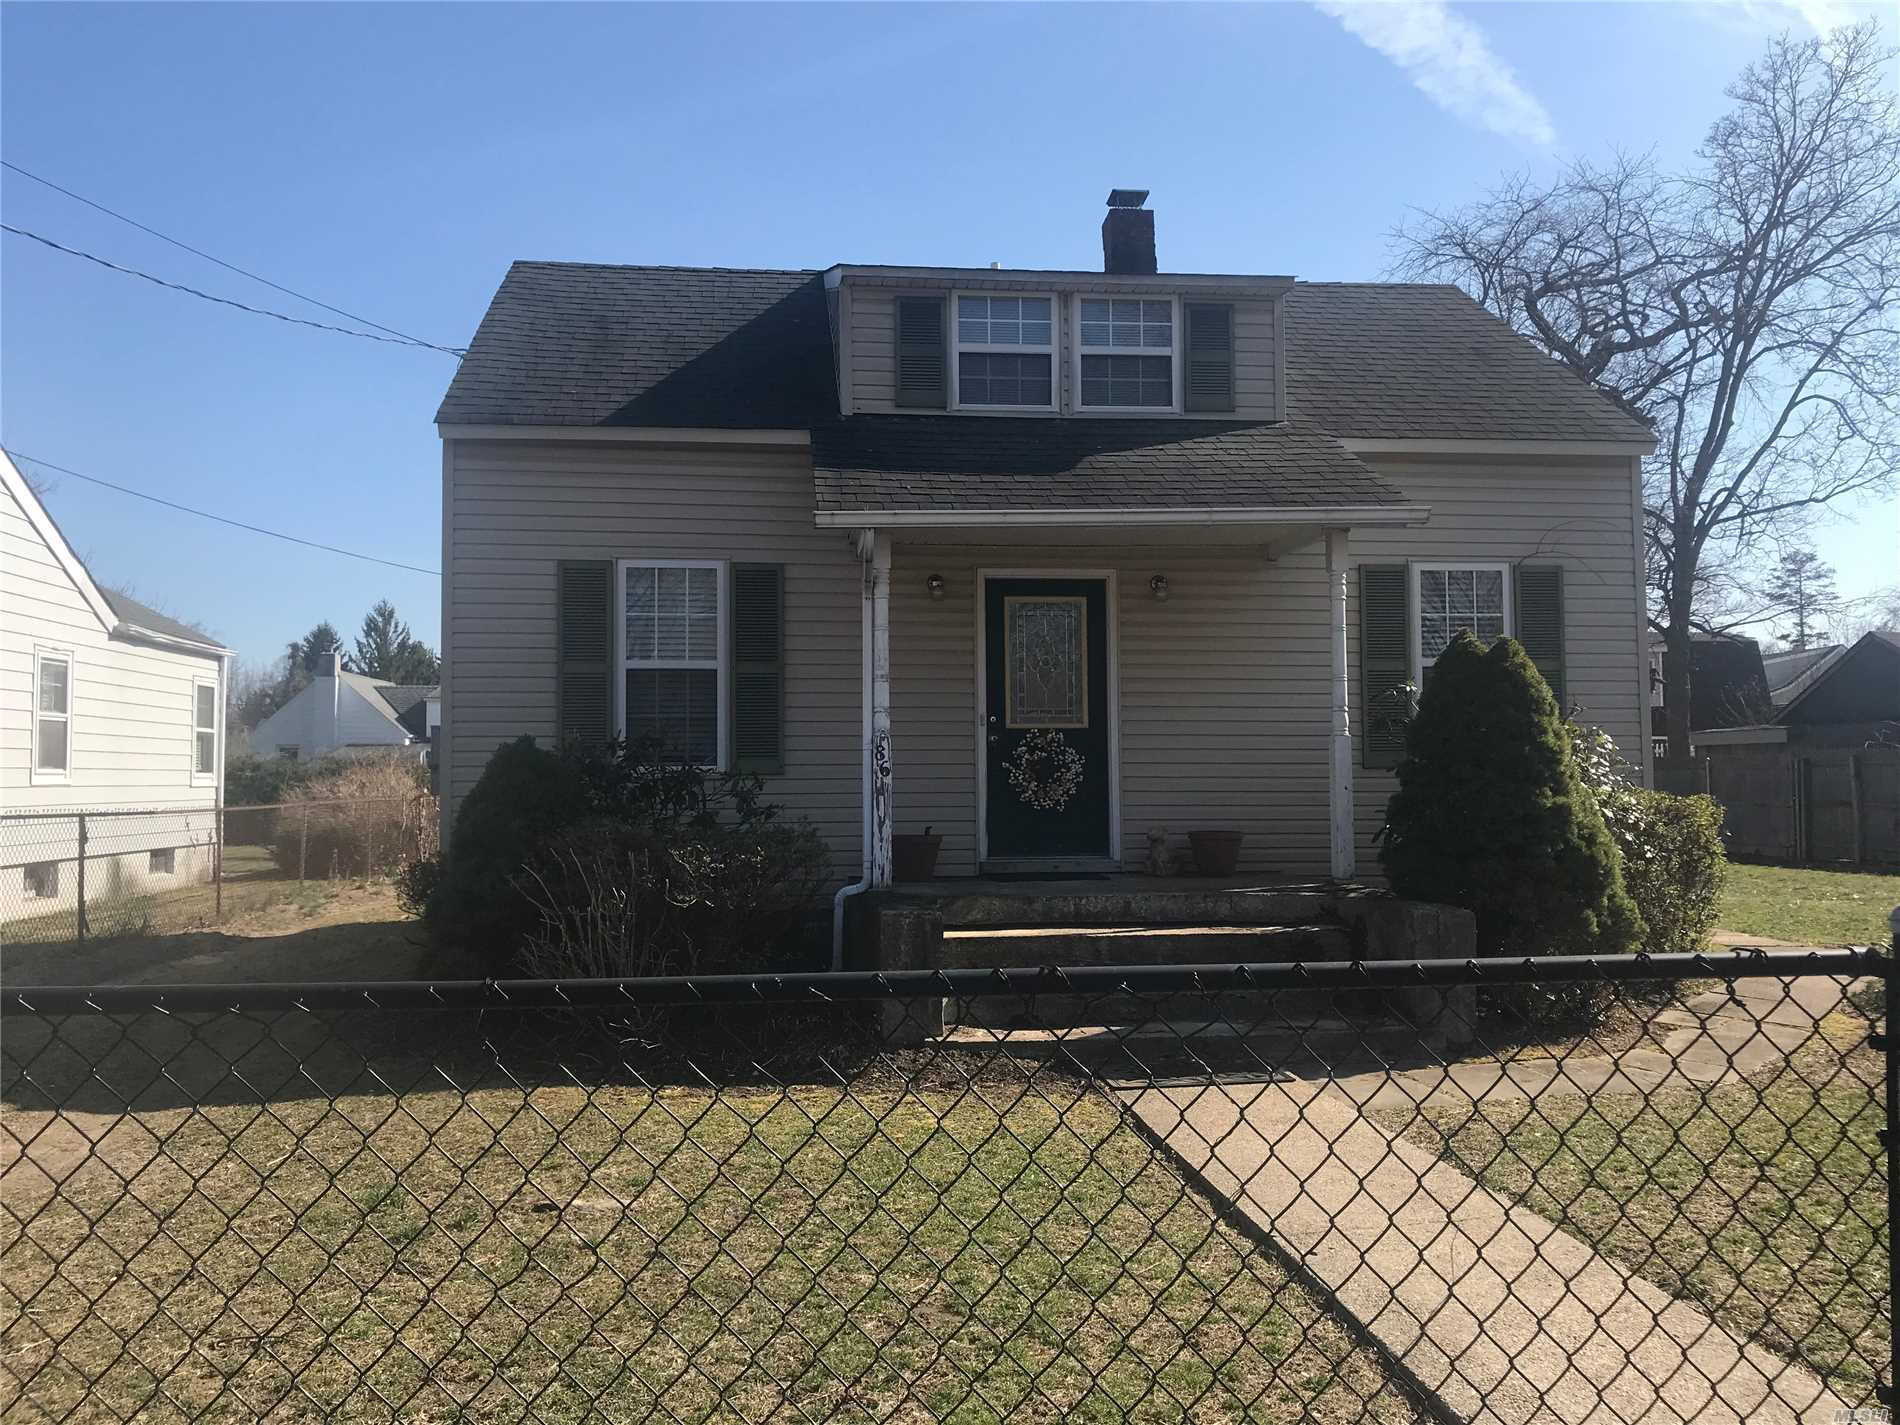 Diamond in the rough! 2 bedroom, 2 bath home in need of TLC! Home built in 1927....large property with expansion possibility....detached garage, siding windows and electric has been upgraded. Home being sold as is...cash deal or 203K loan or conventional loan needed....home sold as is!